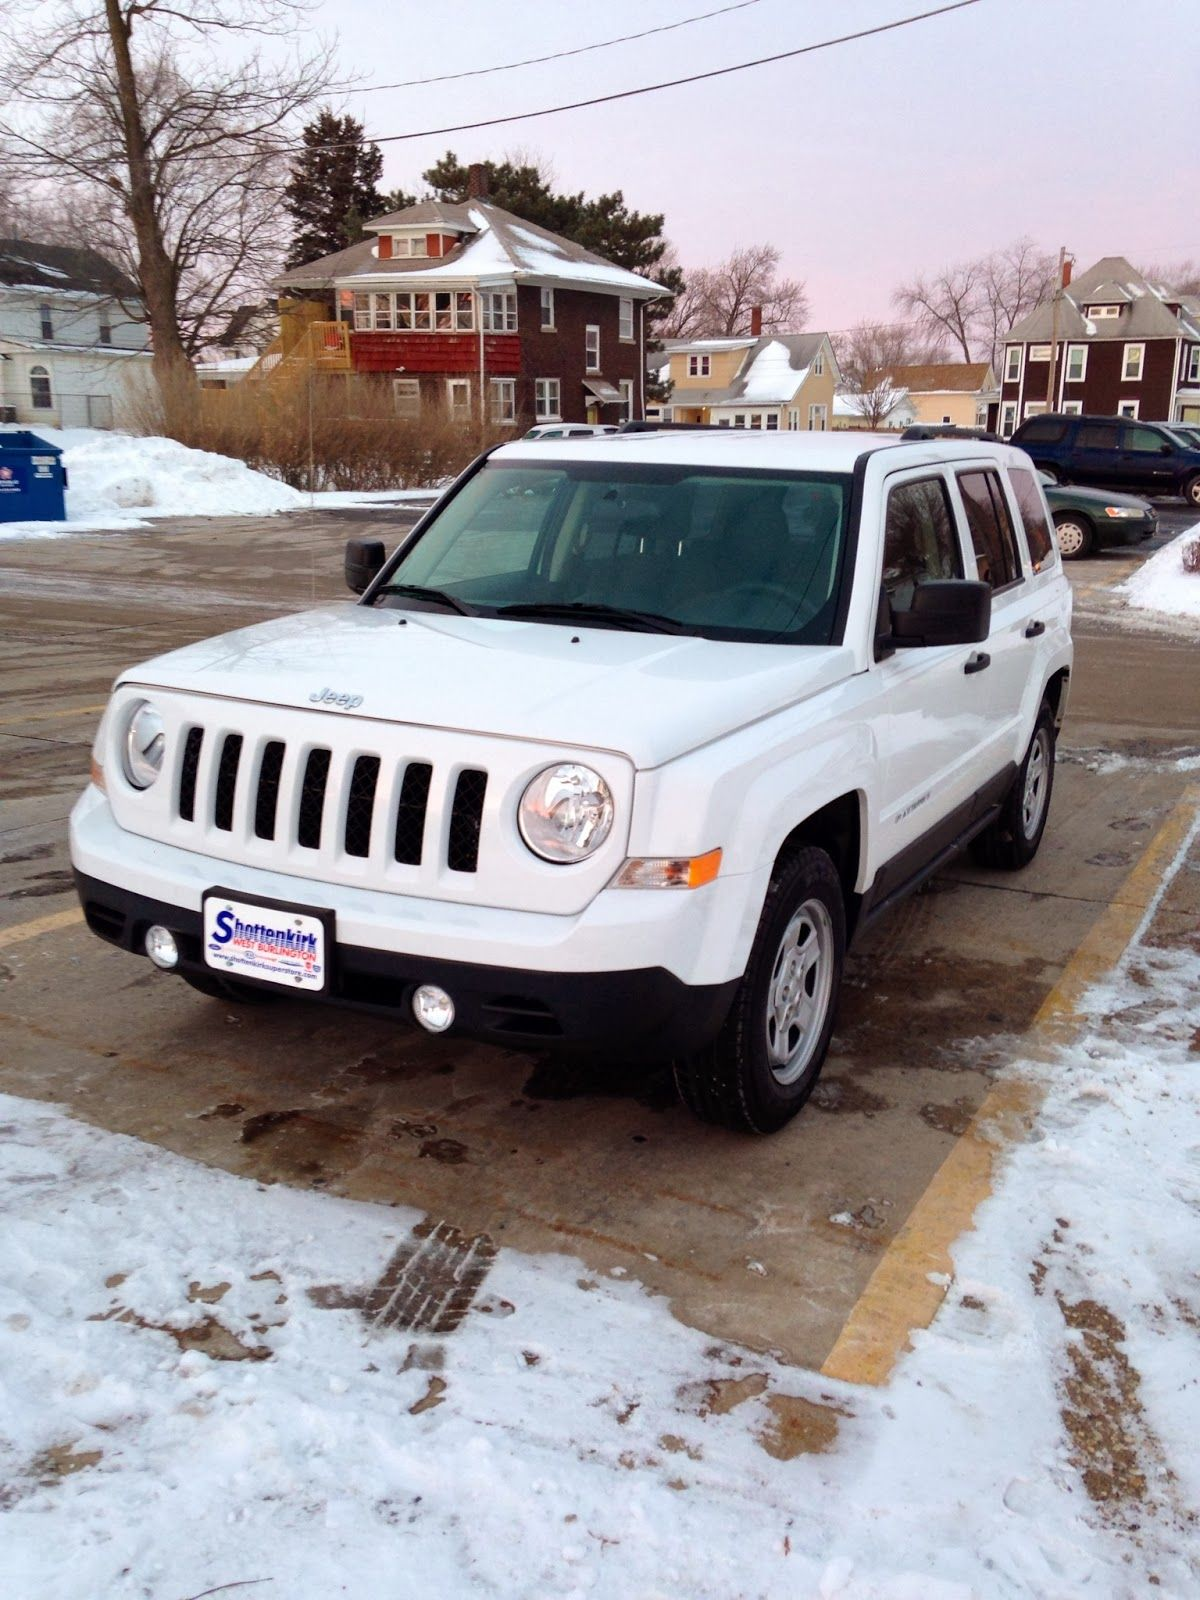 Use My Car As A Trade In Or Sell And Use The Money To Purchase One Of These Love 2014 Jeep Patriot Пройди ТестДрайв Jeep Patriot Crossover Cars Lifted Jeep